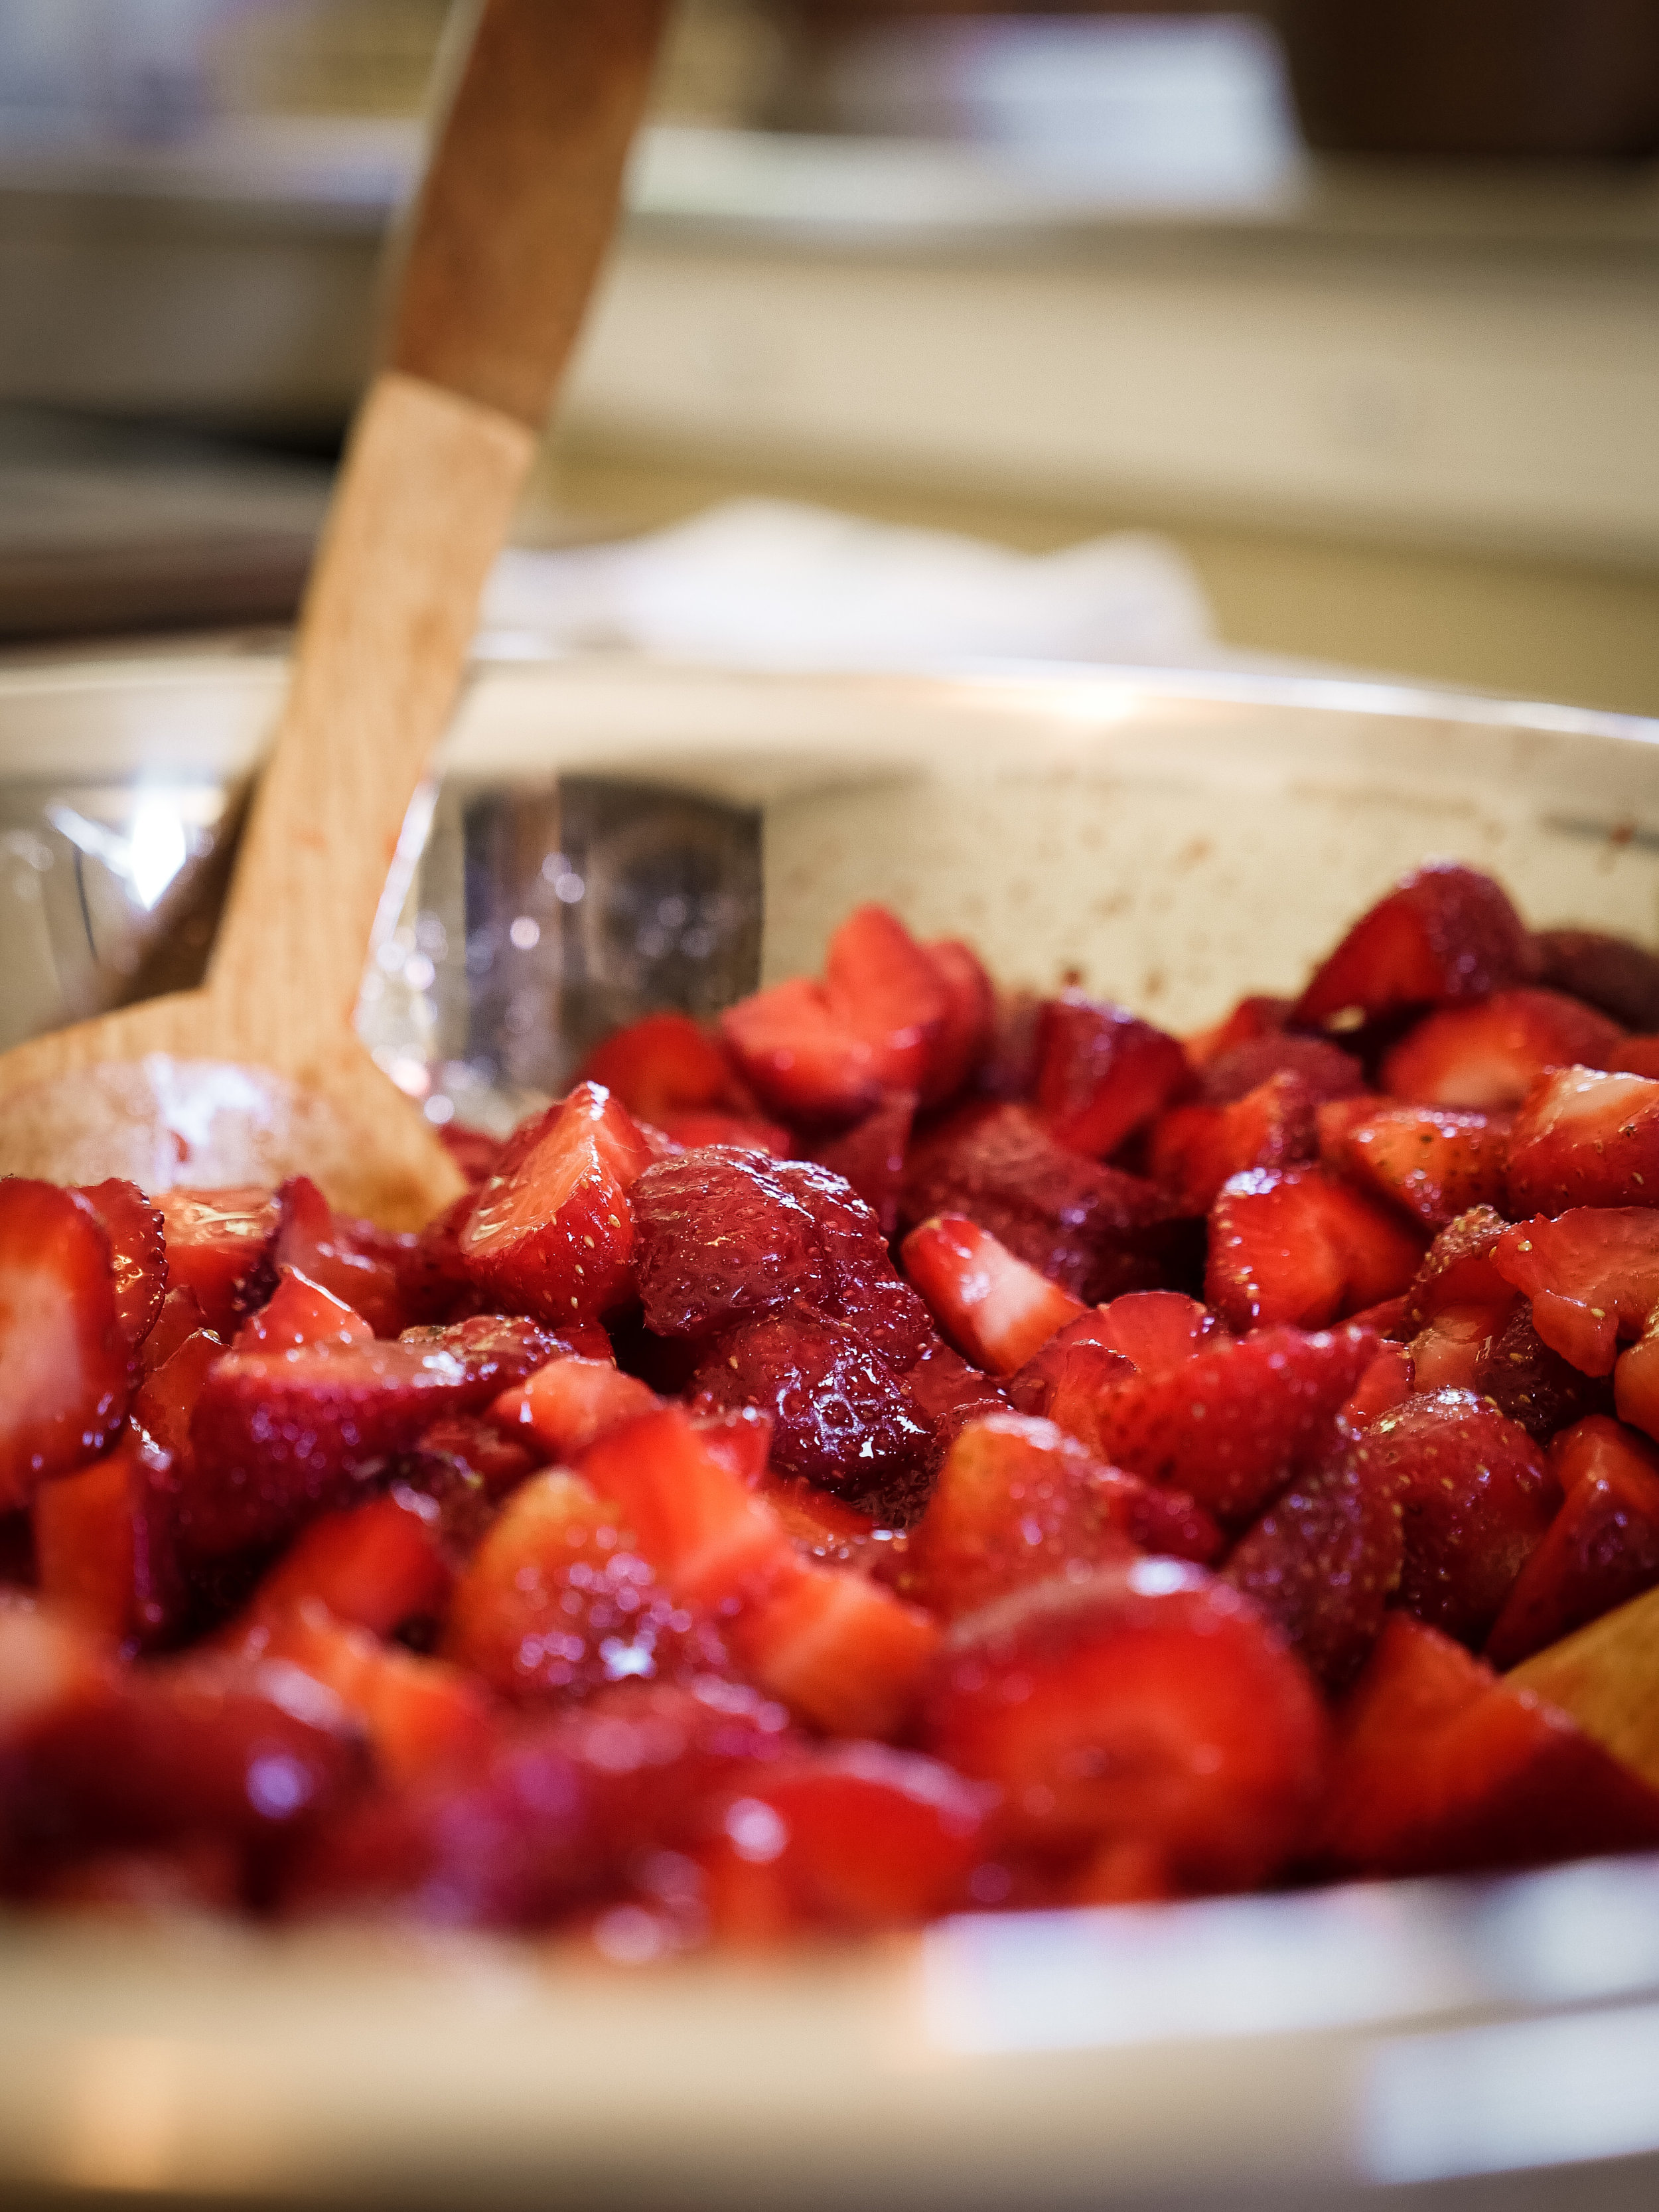 TheRanchTable_StrawberryGathering_June3-31.jpg